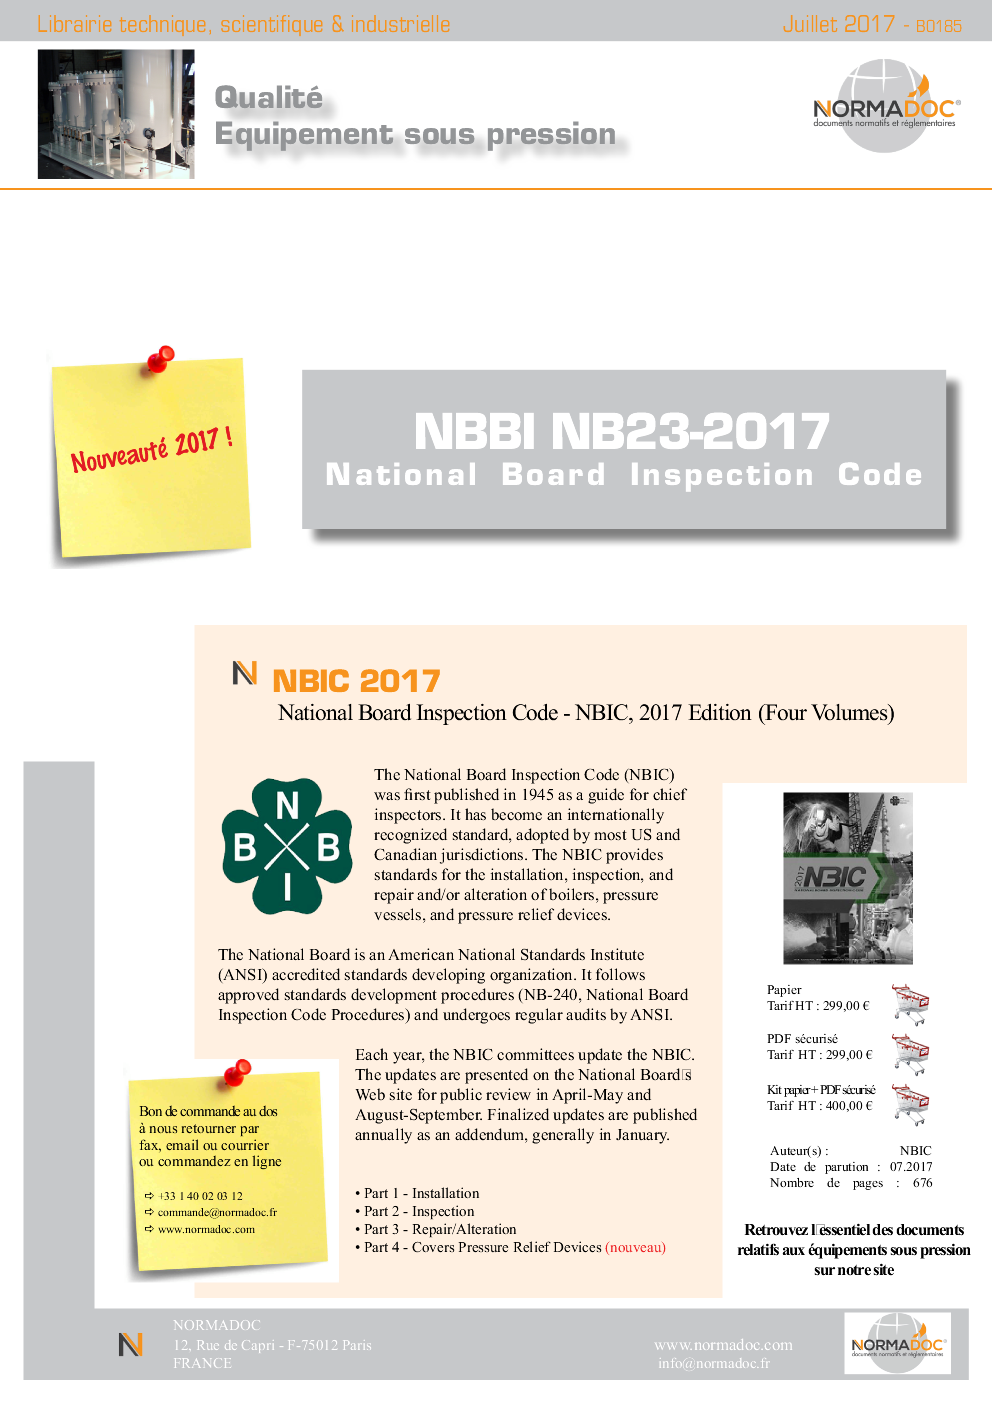 NBIC 2017 - National Board Inspection Code